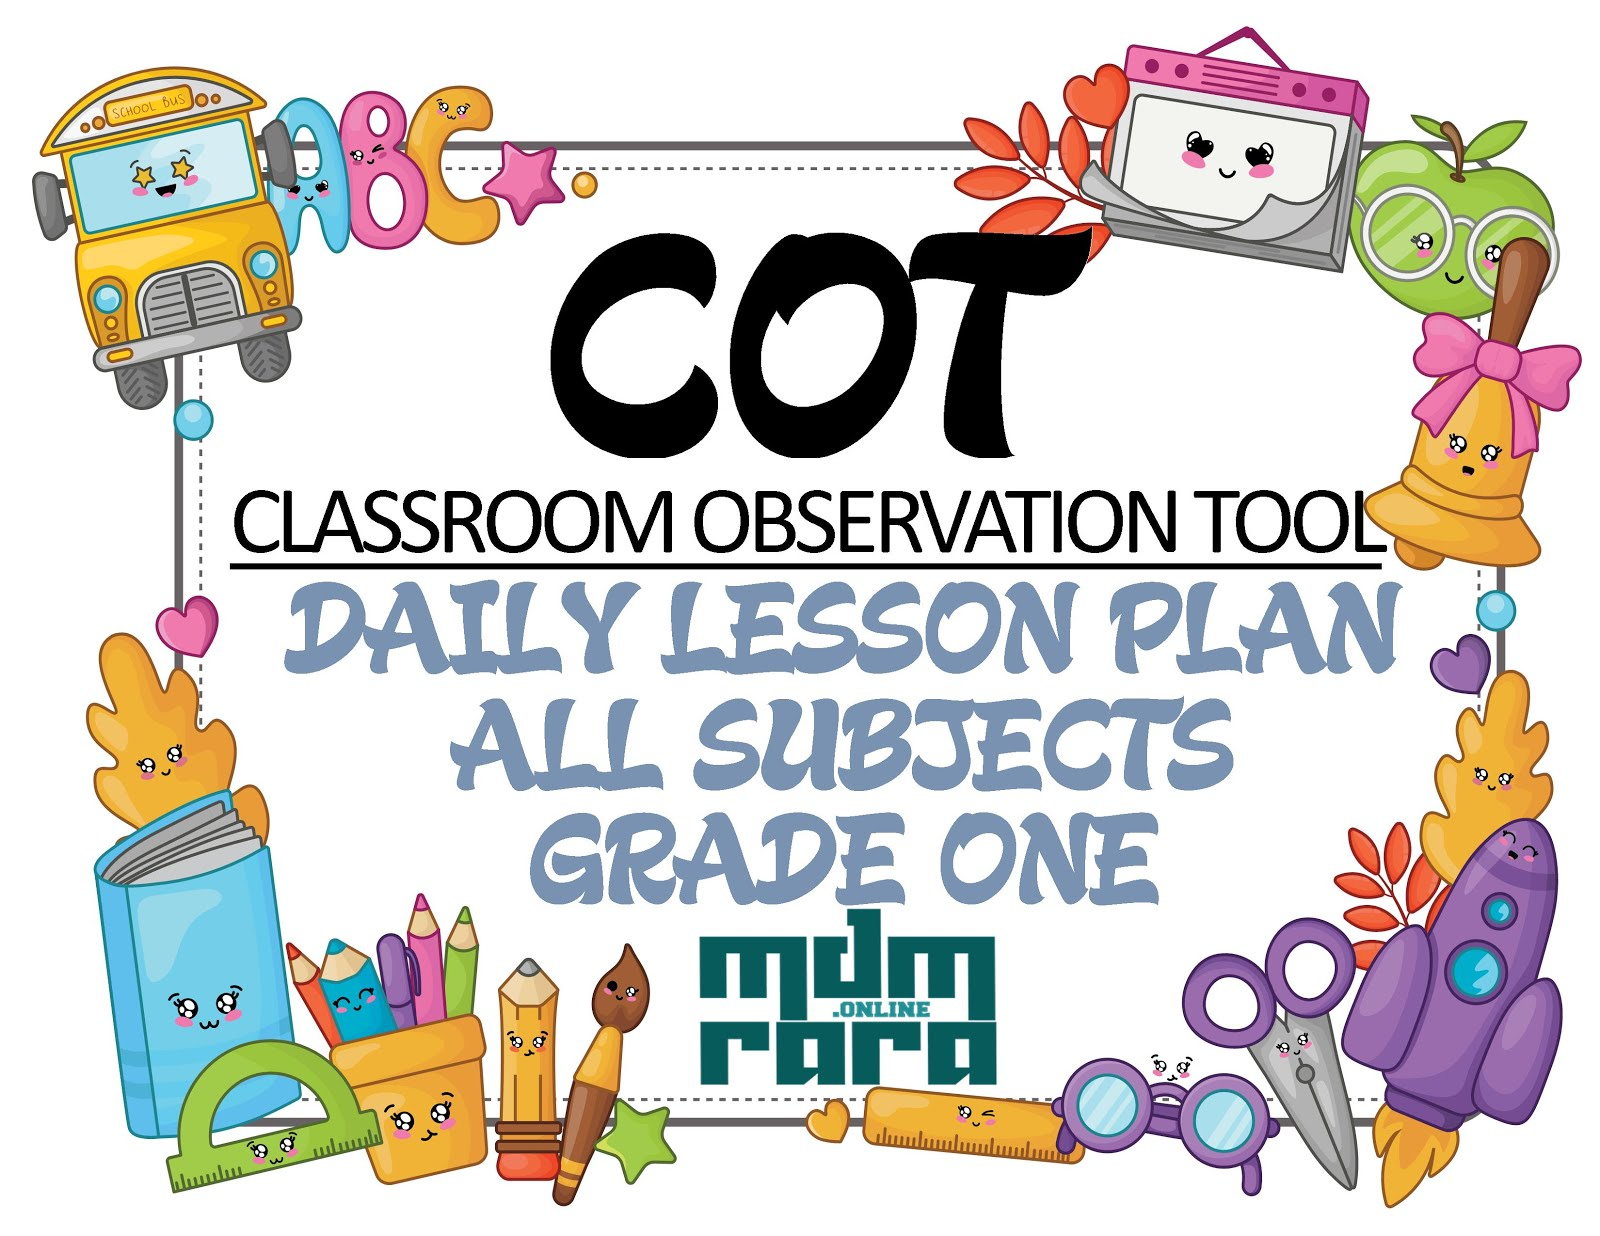 hight resolution of CLASSROOM OBSERVATION TOOL (COT) DAILY LESSON PLAN (DLP) GRADE ONE - mdmrara